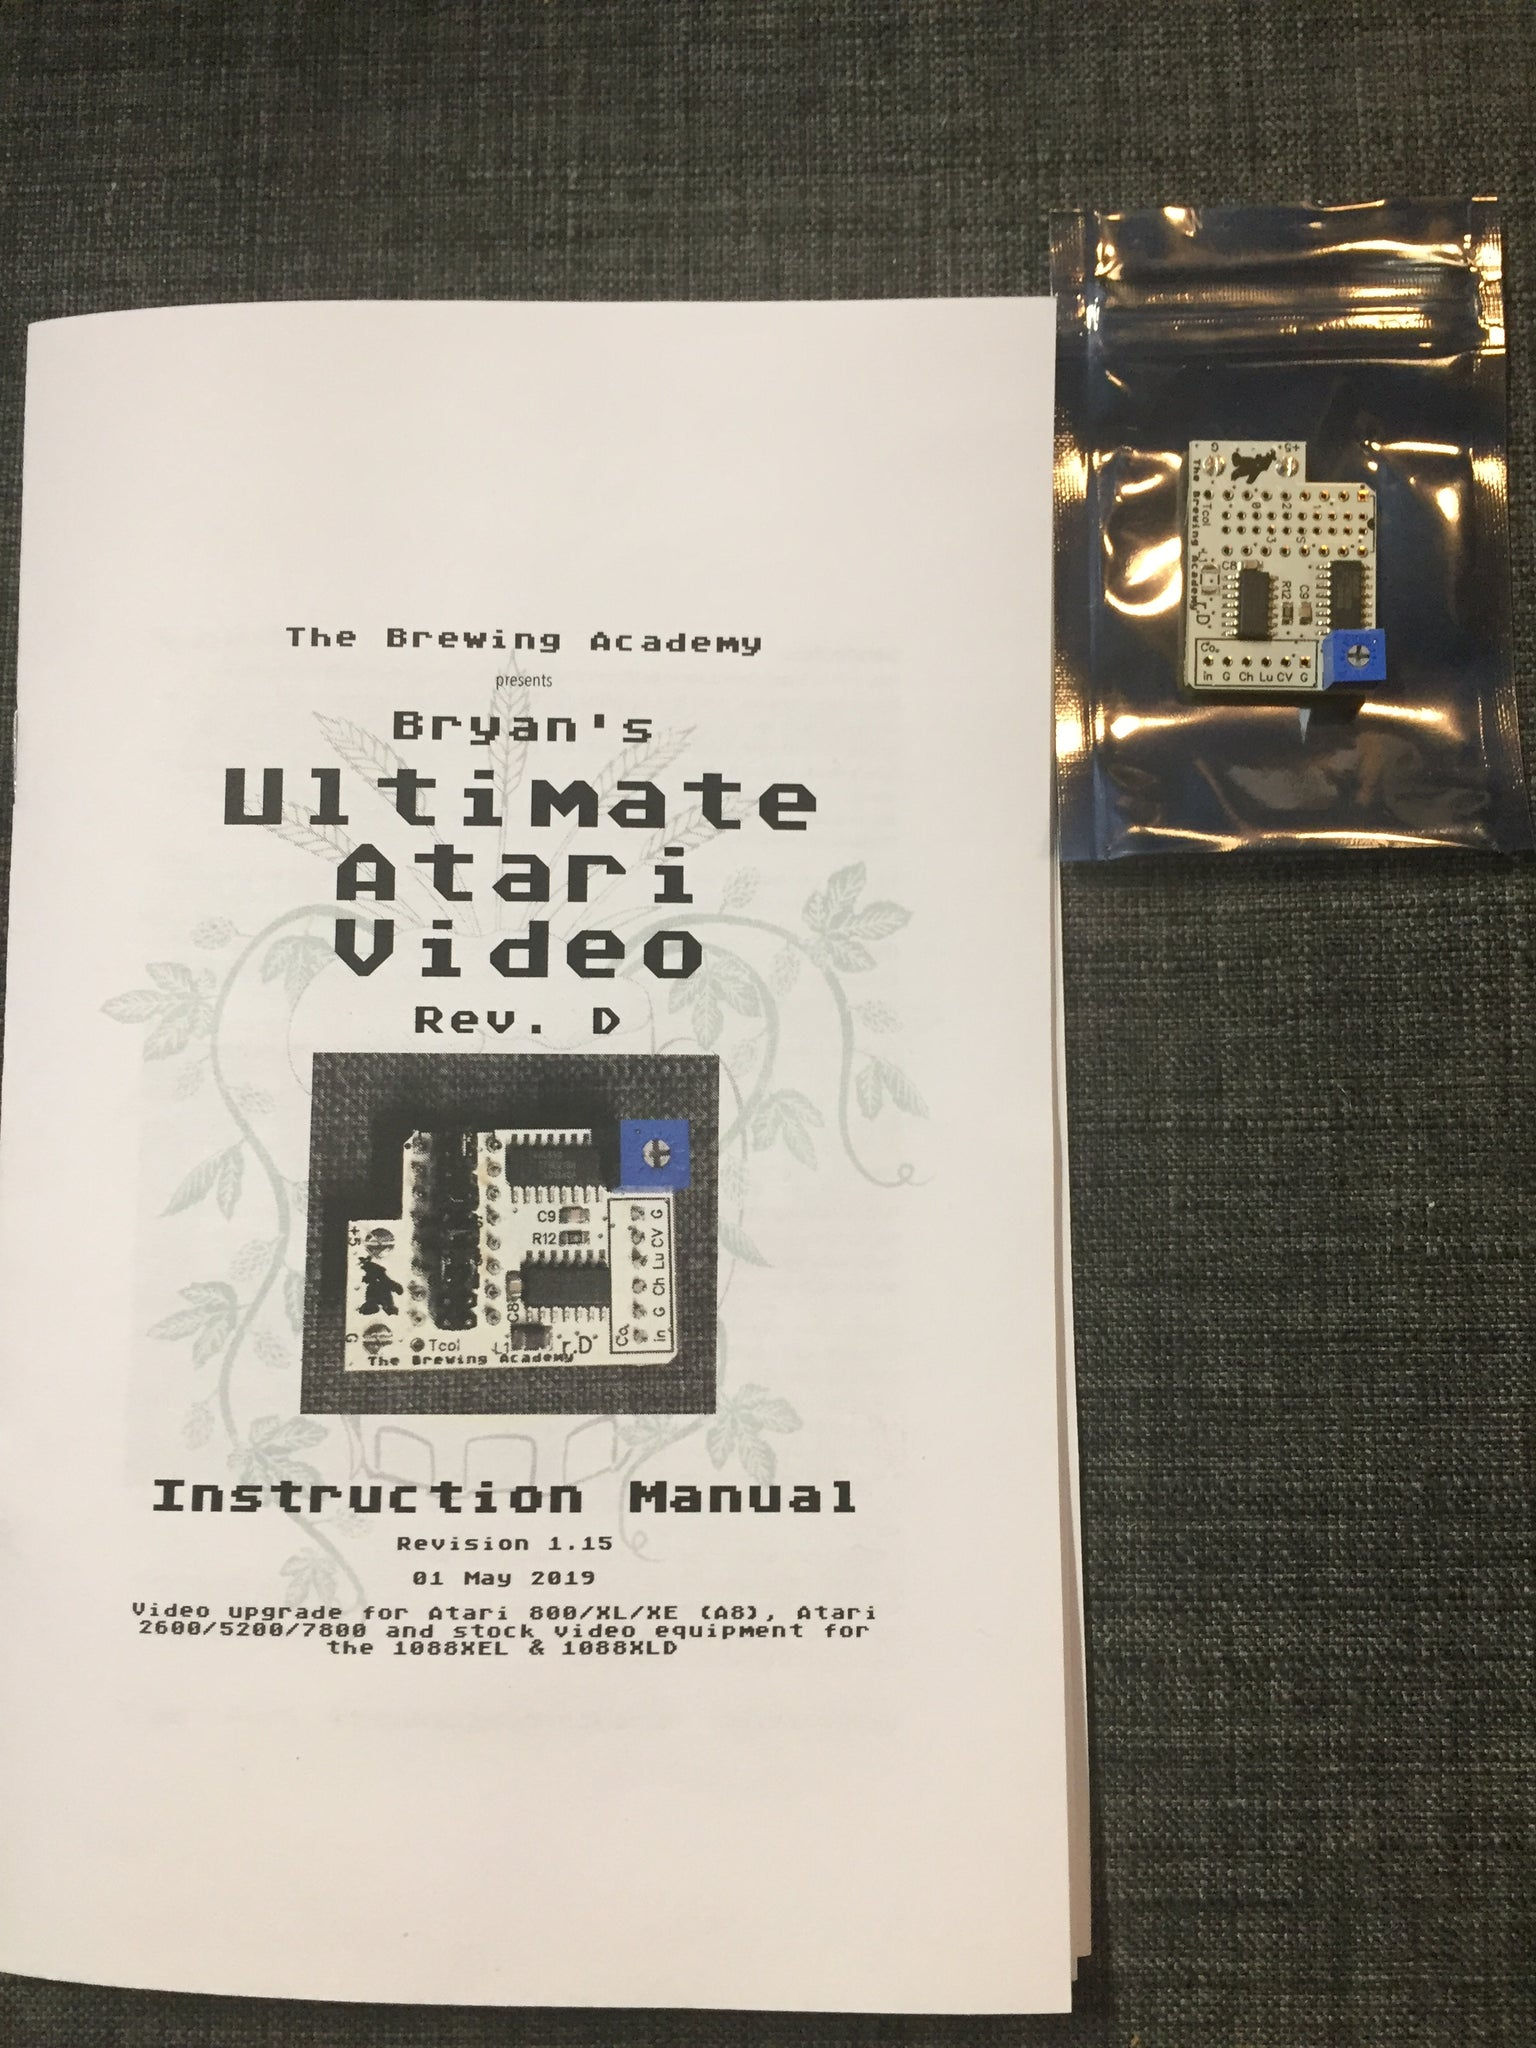 TBA's Ultimate Atari Video (UAV) board for 400/800/XL/XE Also for 1088XEL/XLD